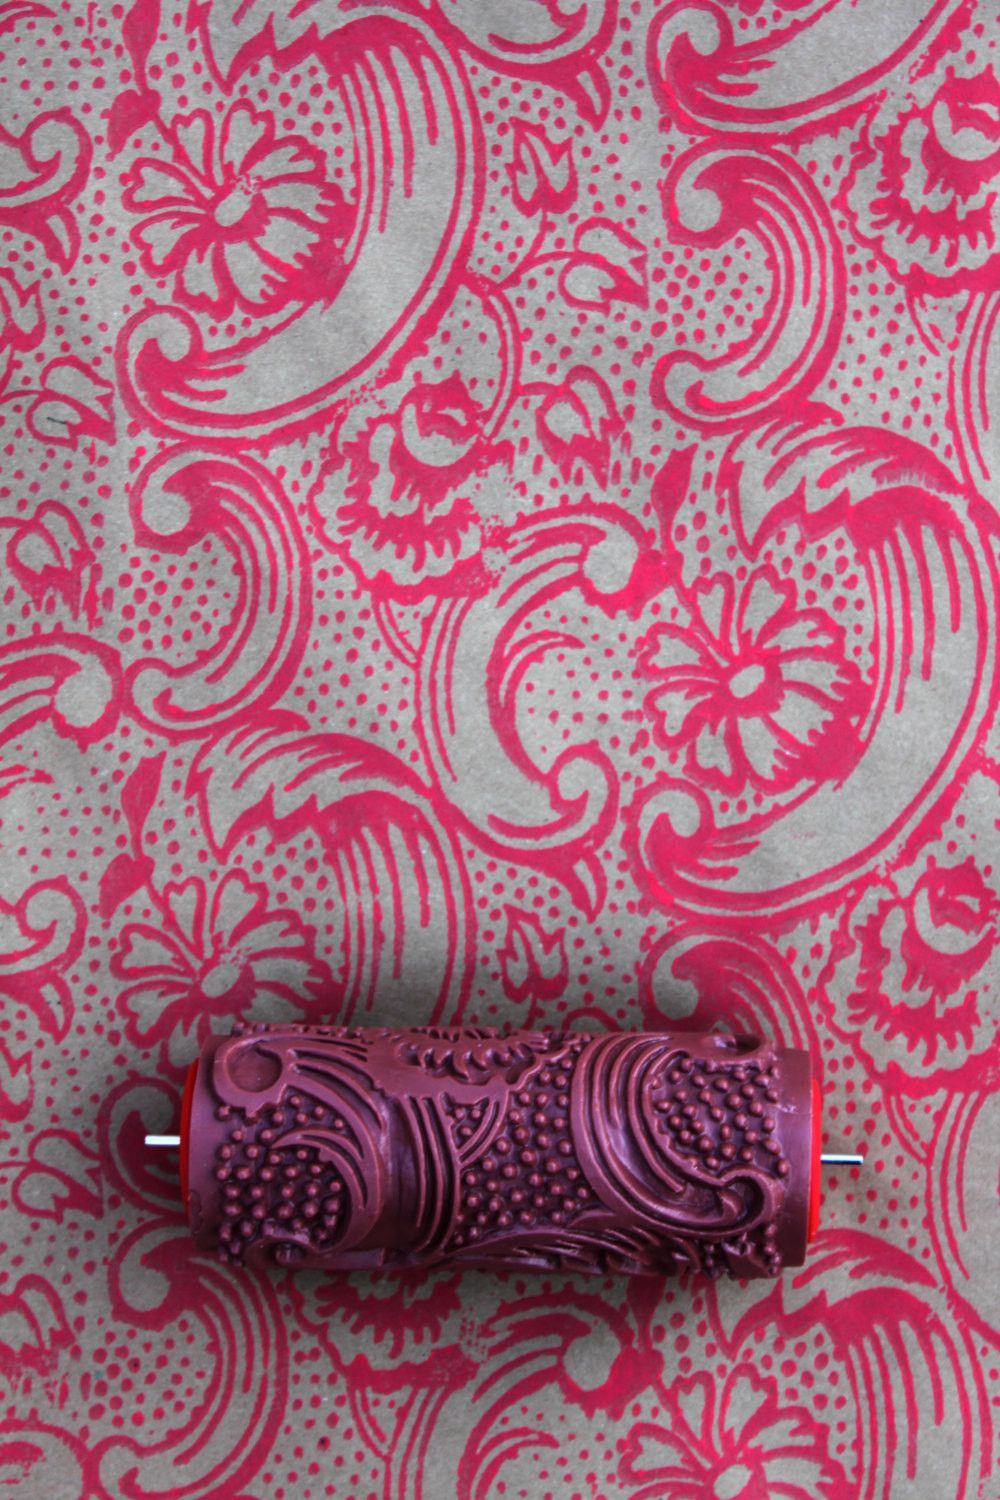 Wallpaper Paint Roller night dahlia patterned paint roller | patterned paint rollers